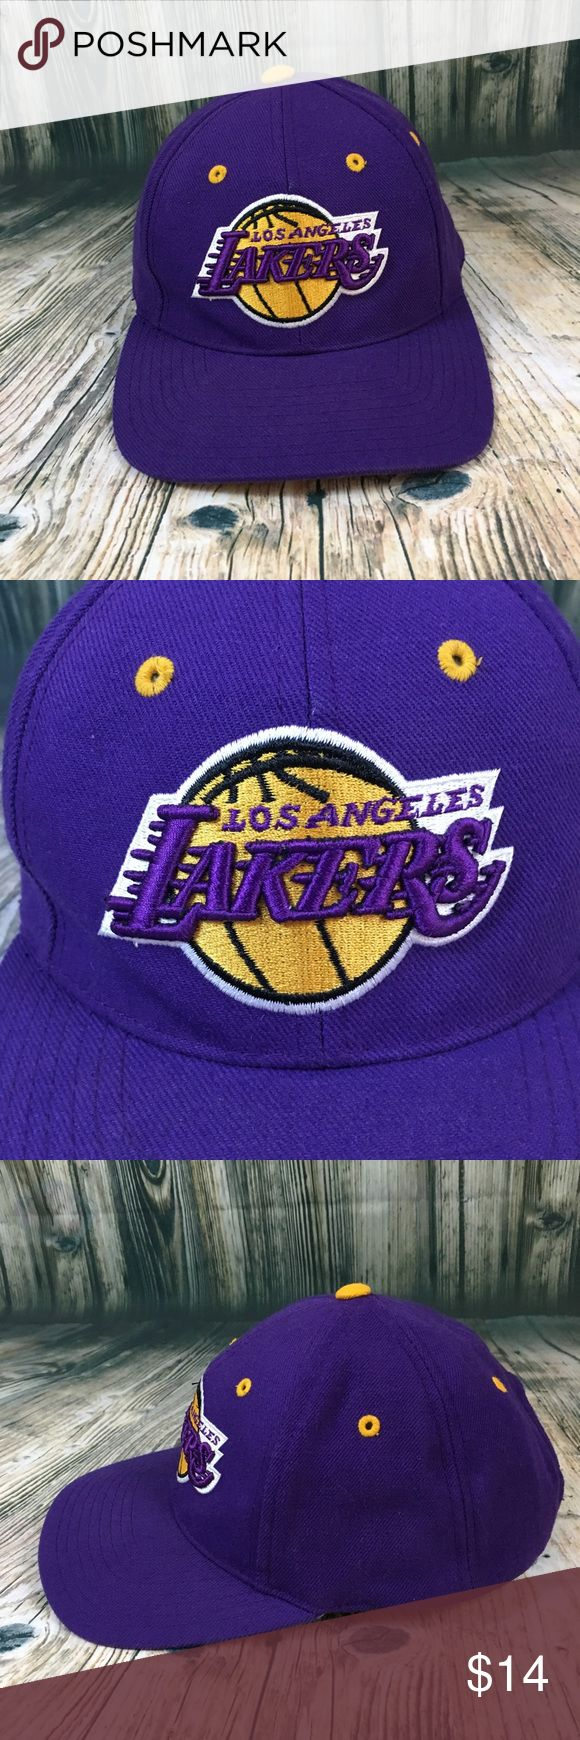 NBA Lakers Hat Puma One Size Adjustable NBA Lakers Hat Puma One Size Adjustable. Excellent condition. Puma Accessories Hats